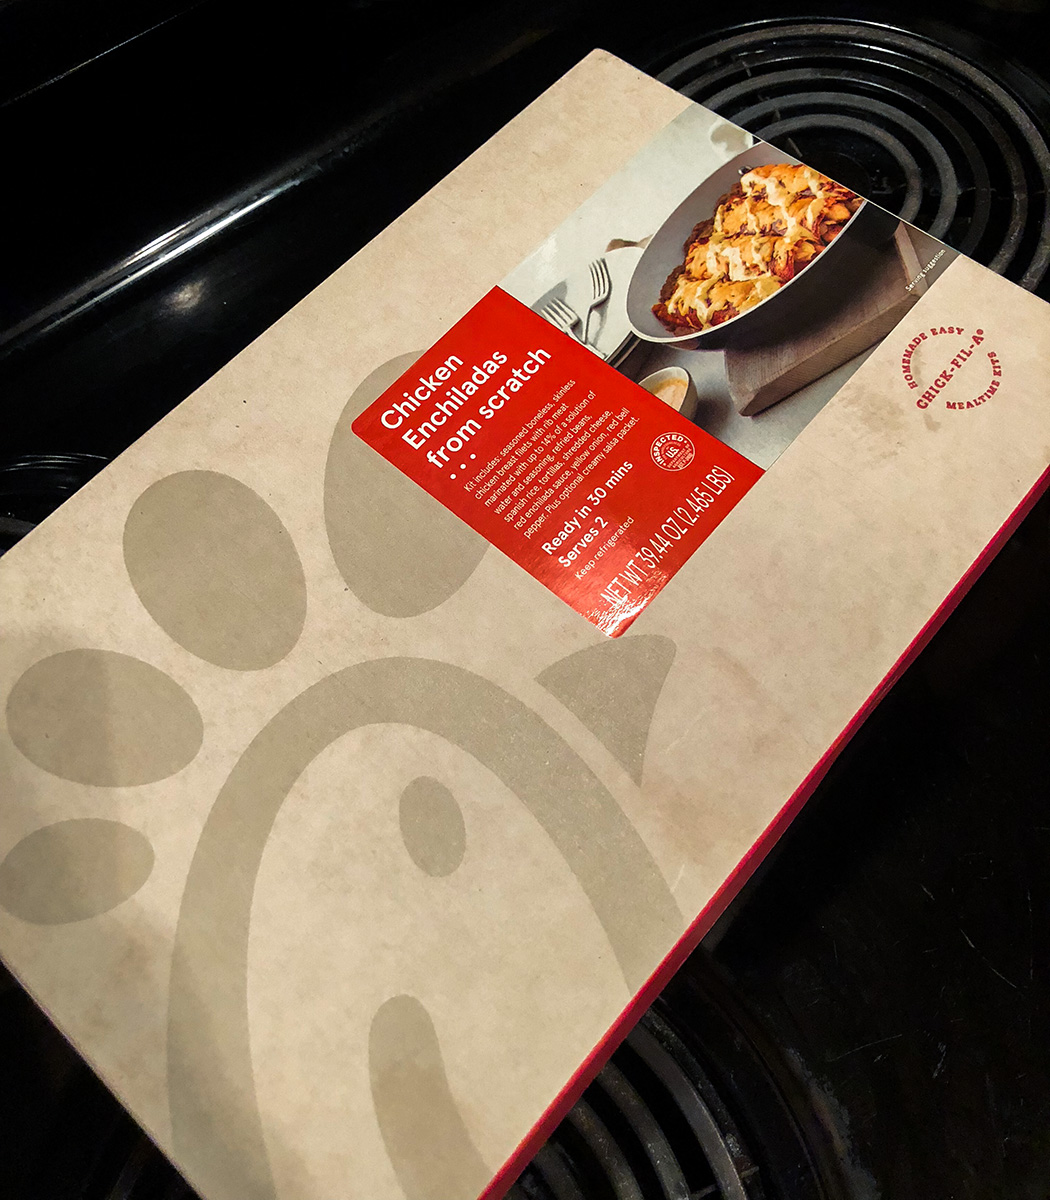 Chick-fil-A meal kit is it good?